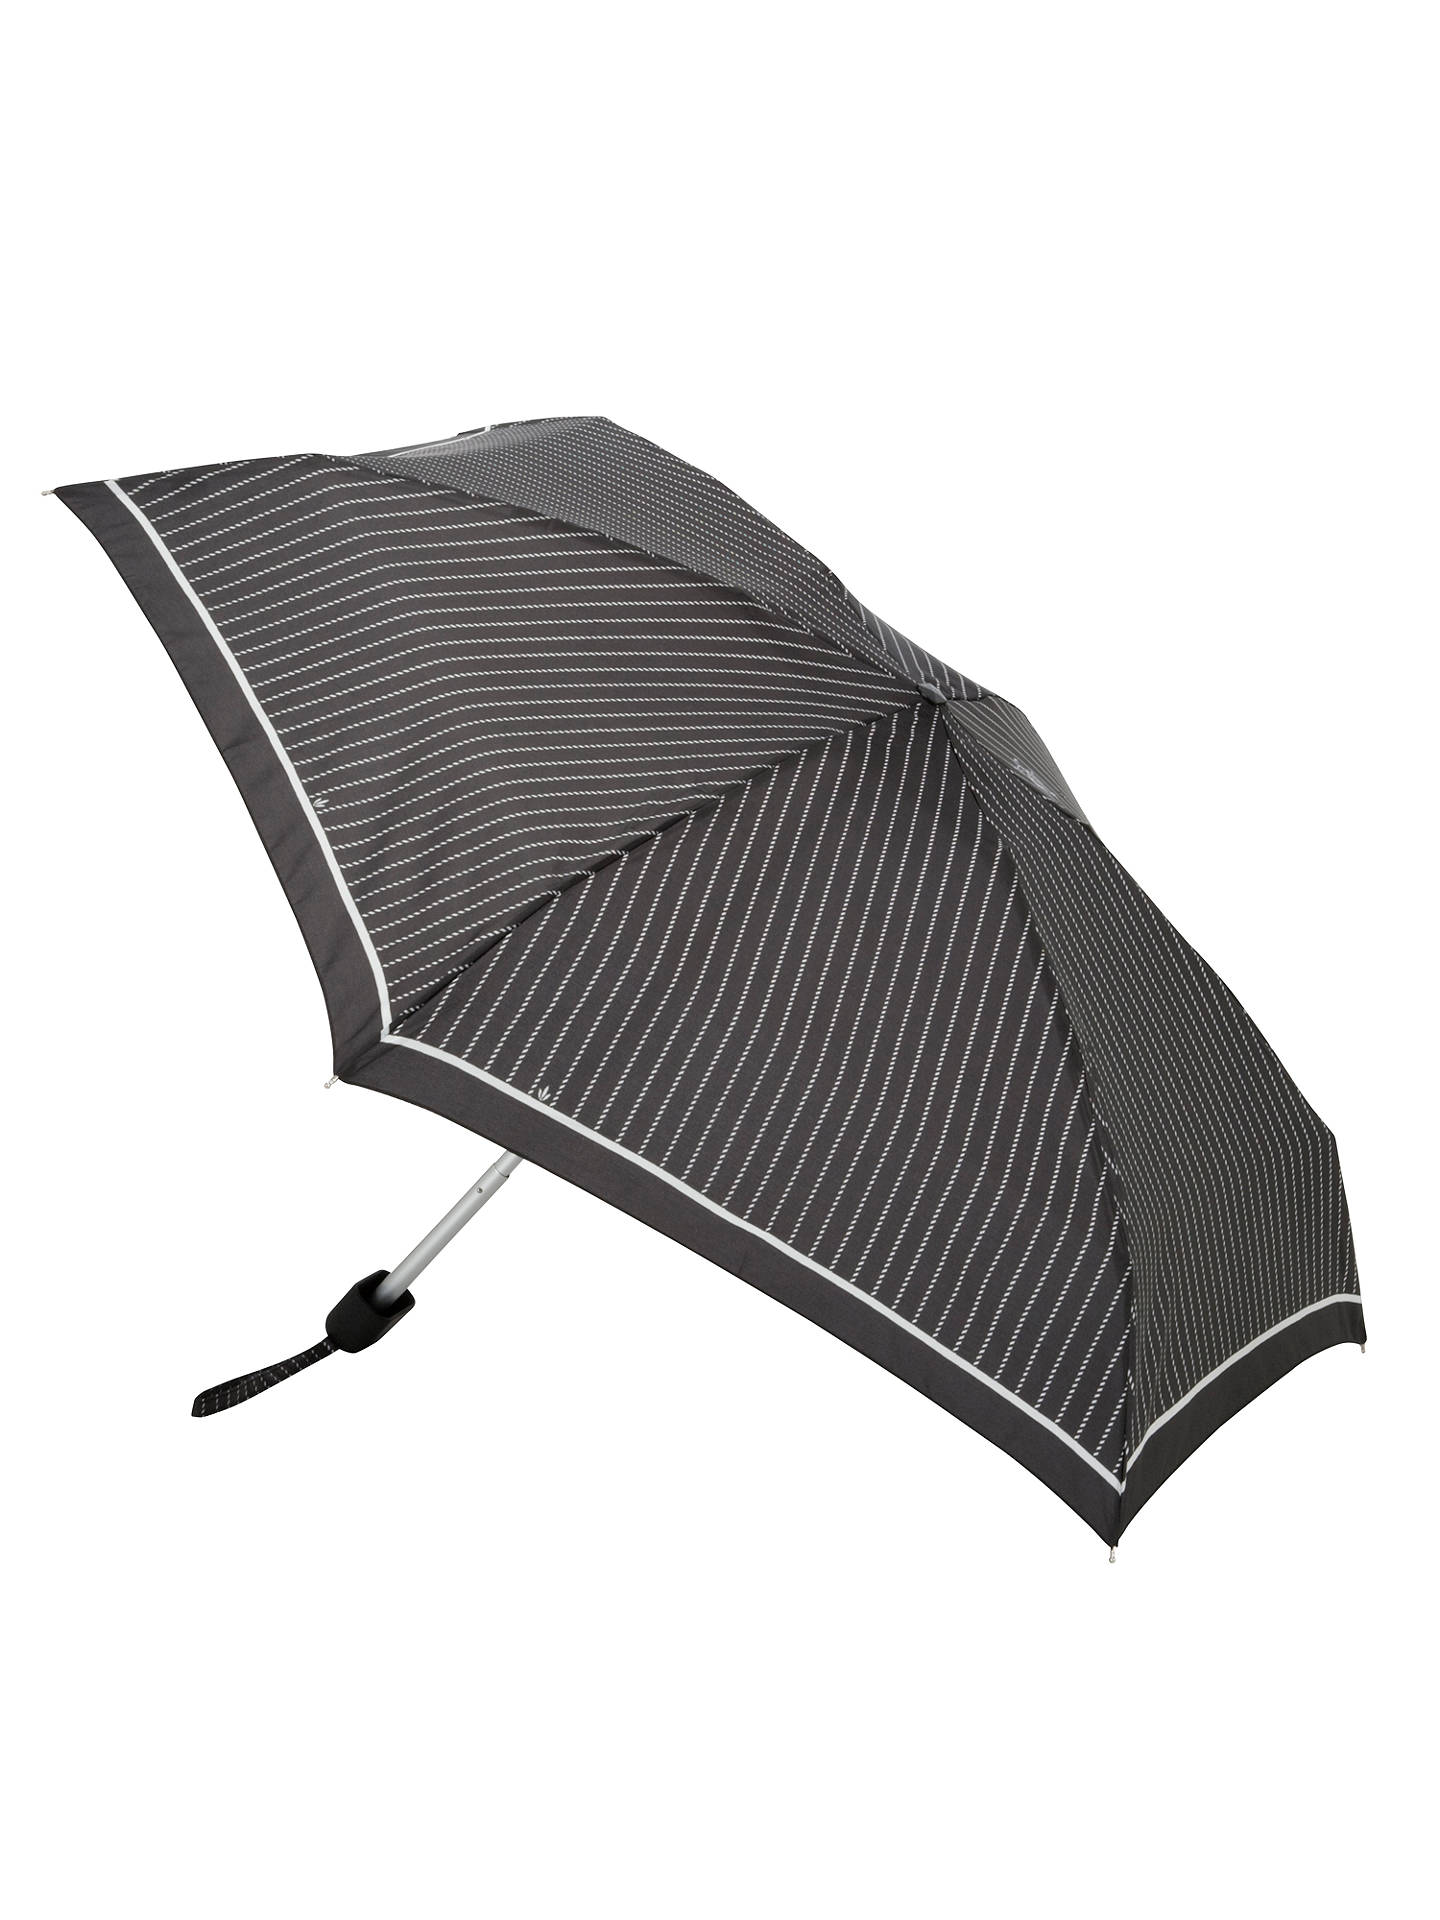 d66f66940260 Fulton Tiny-2 Classics Compact Folding Umbrella, Black/White